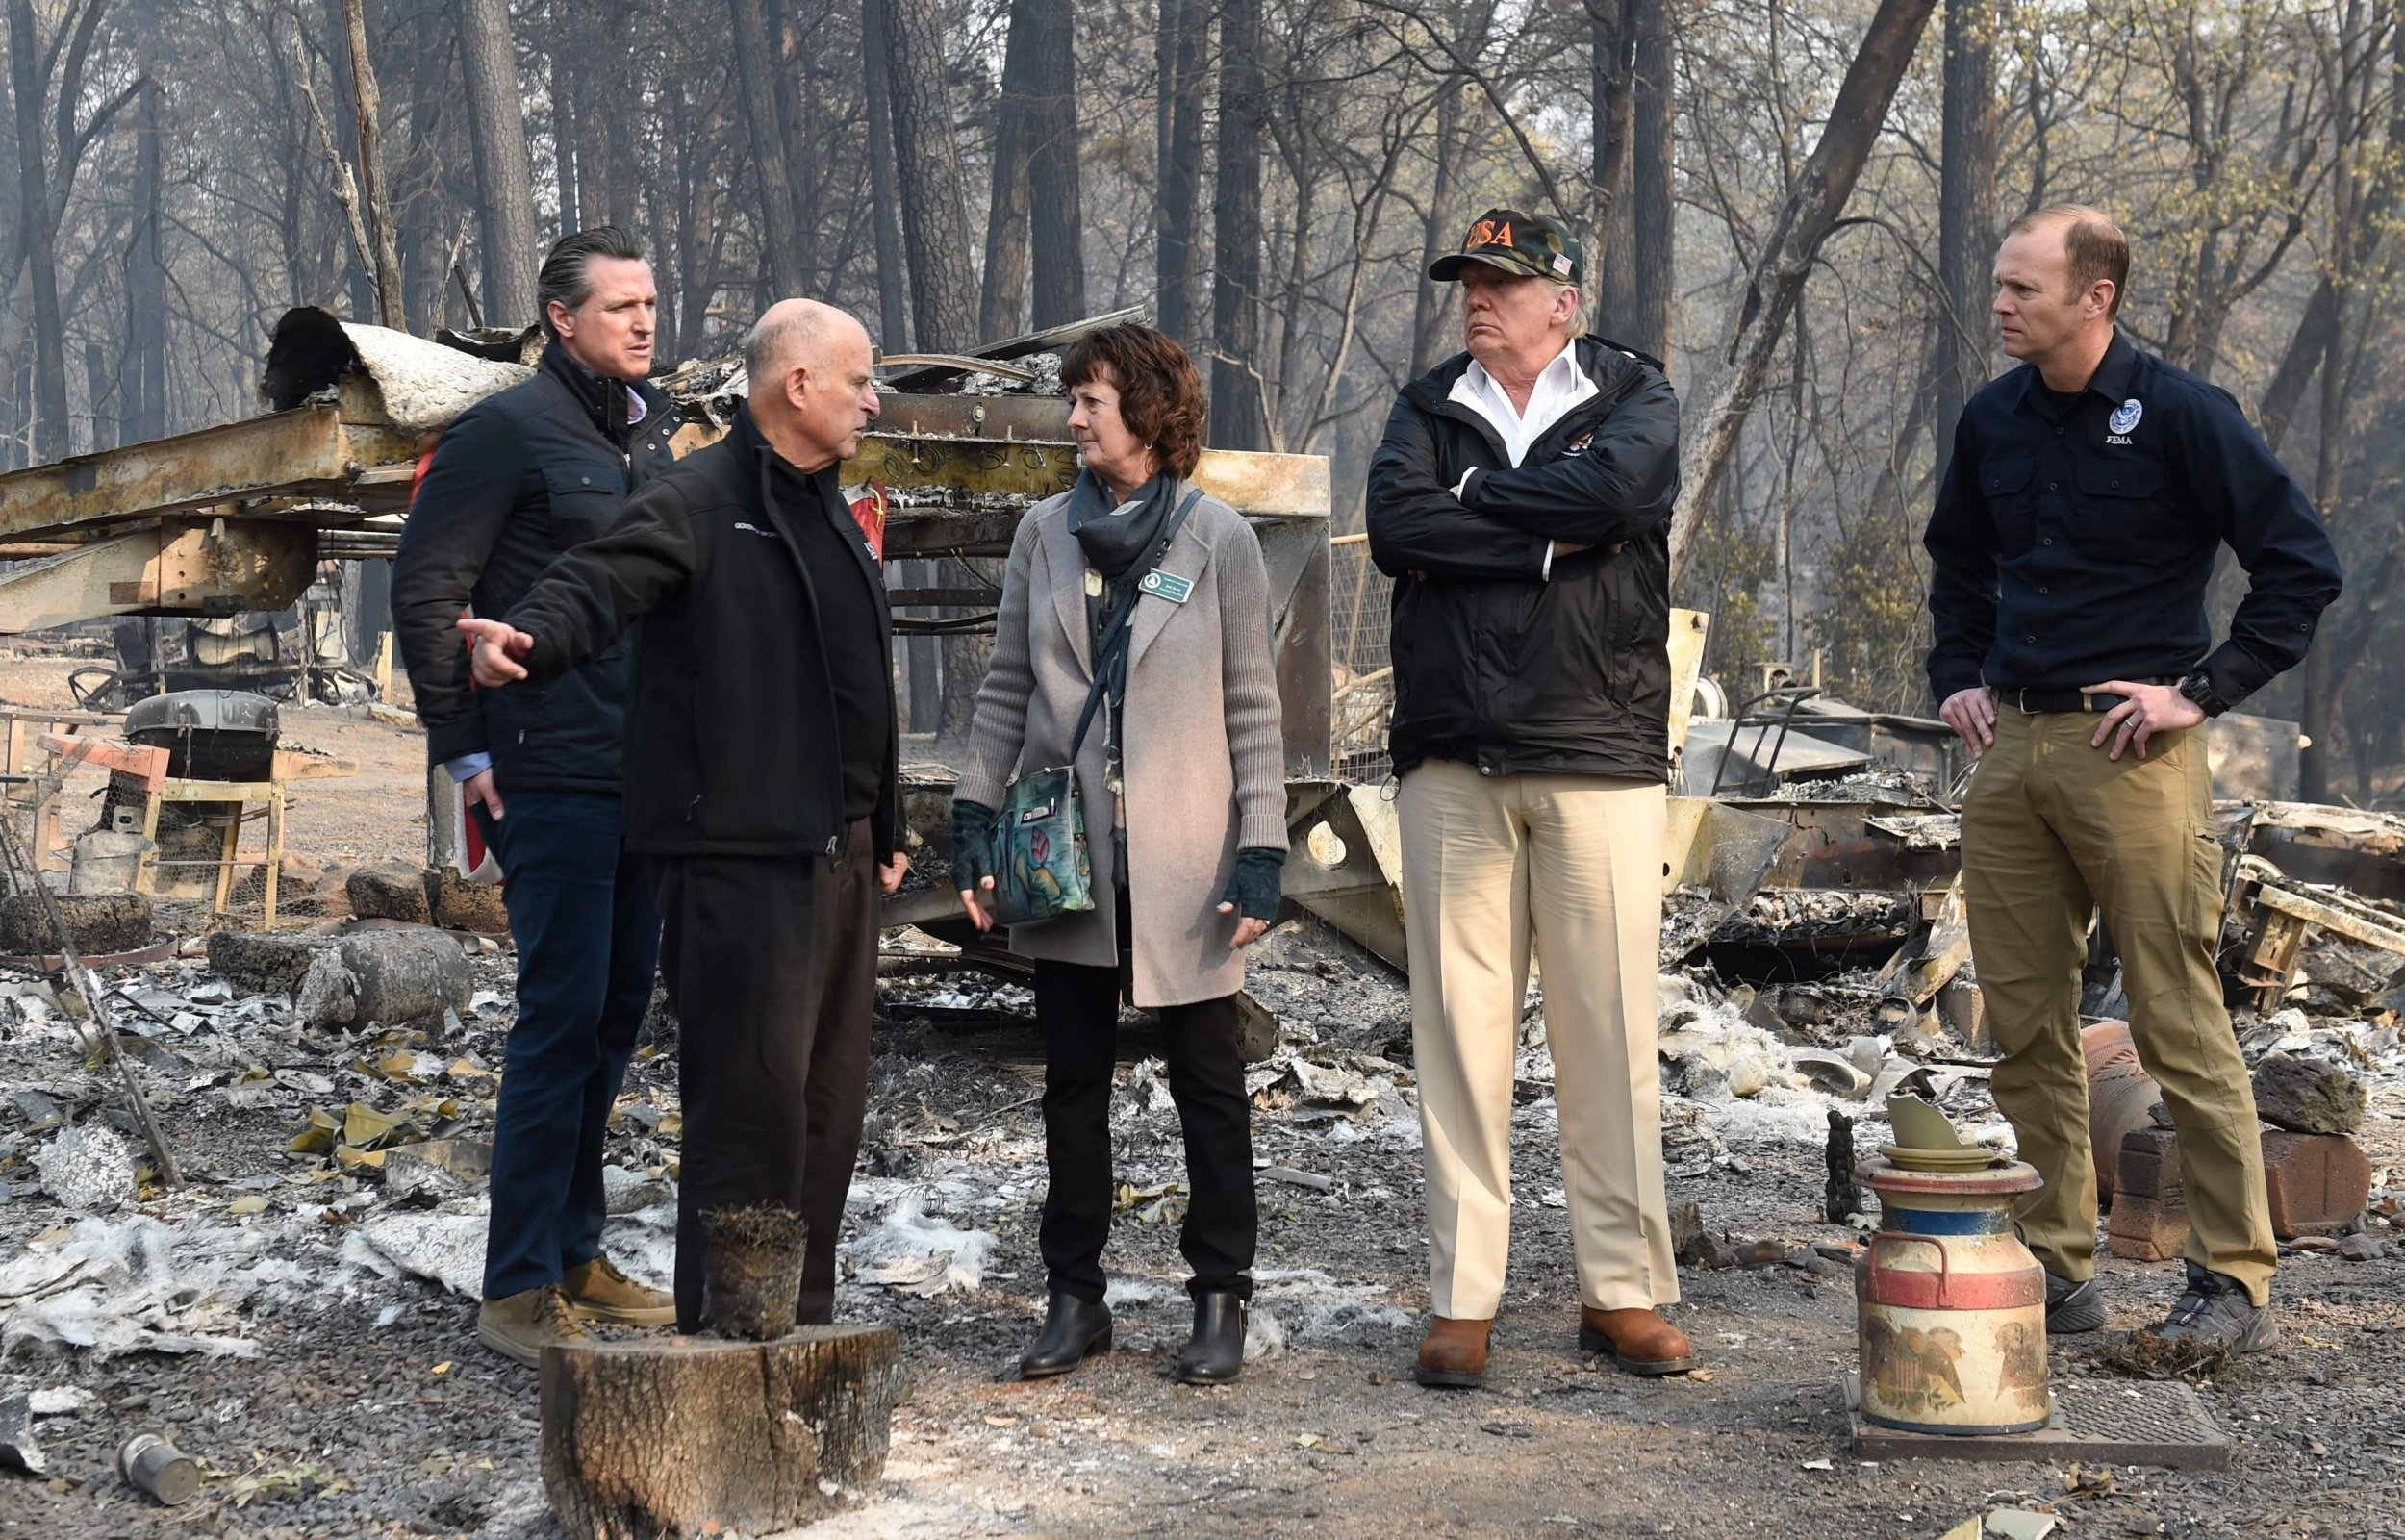 "US President Donald Trump (2R) looks on with Paradise Mayor Jody Jones (C), Governor of California Jerry Brown (L), Administrator of the Federal Emergency Management Agency, Brock Long (R), and Lieutenant Governor of California, Gavin Newson, as they view damage from wildfires in Paradise, California on November 17, 2018. - President Donald Trump arrived in California to meet with officials, victims and the ""unbelievably brave"" firefighters there, as more than 1,000 people remain listed as missing in the worst-ever wildfire to hit the US state. (Photo by SAUL LOEB / AFP)SAUL LOEB/AFP/Getty Images"